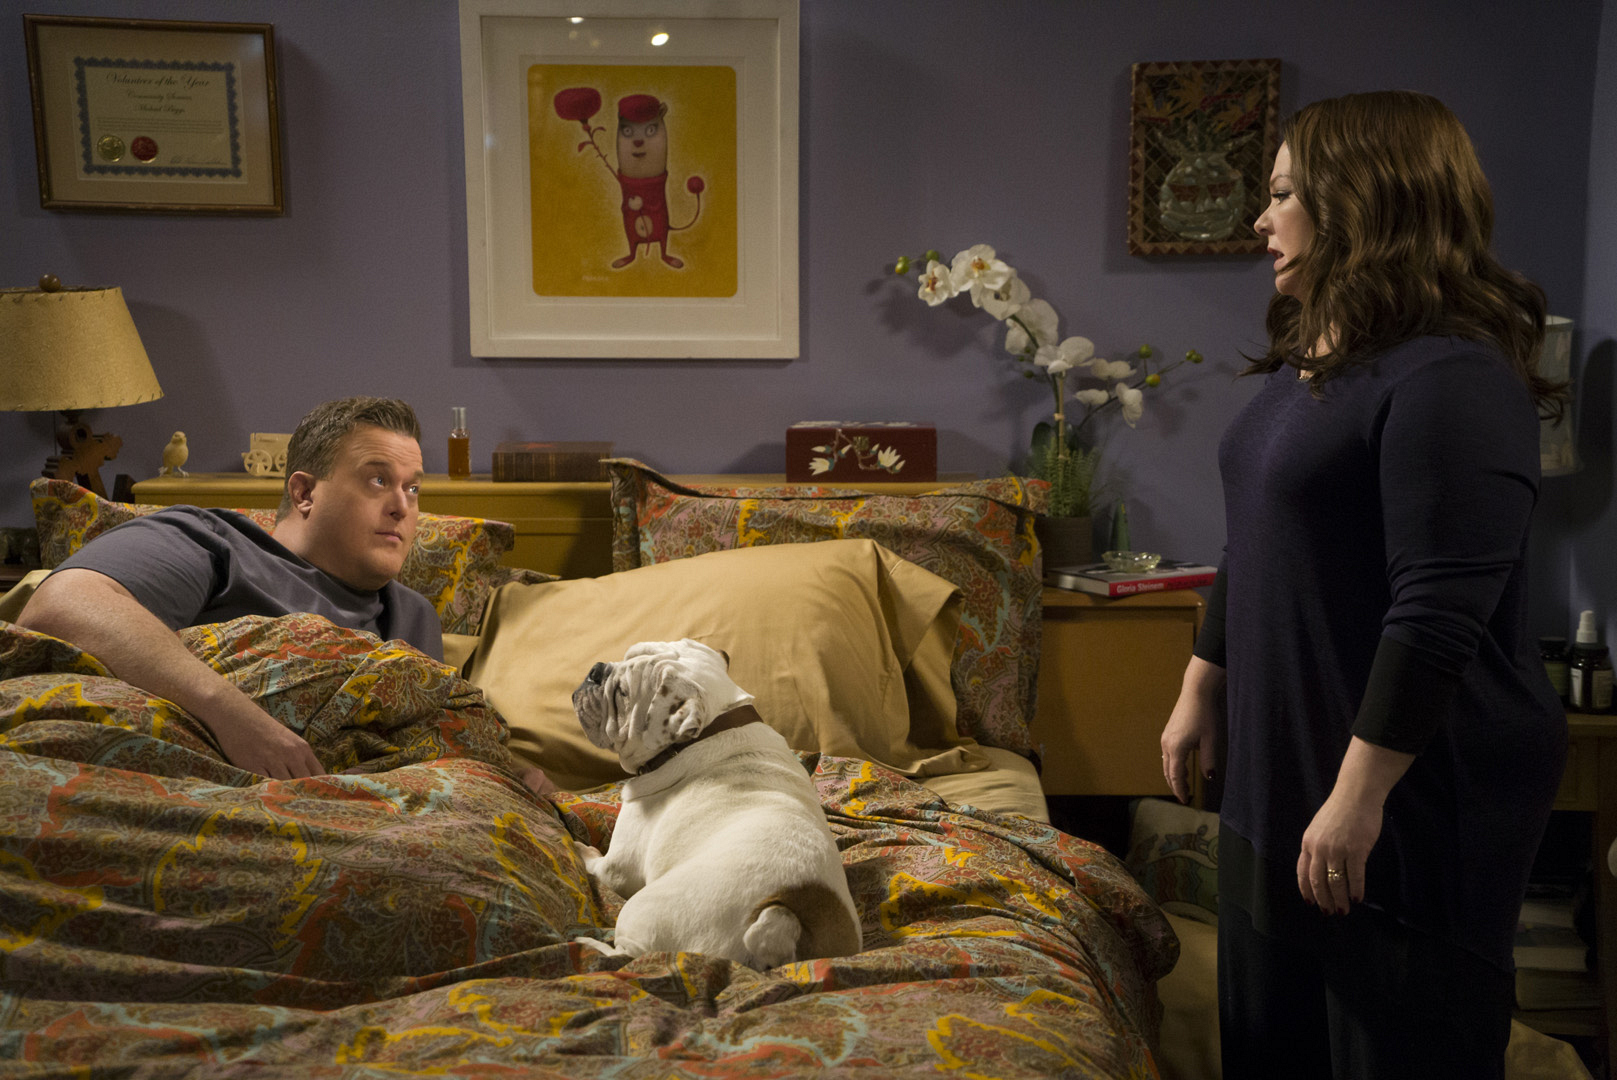 There doesn't seem to be enough room in the bed for Mike, Molly, and Birdie.